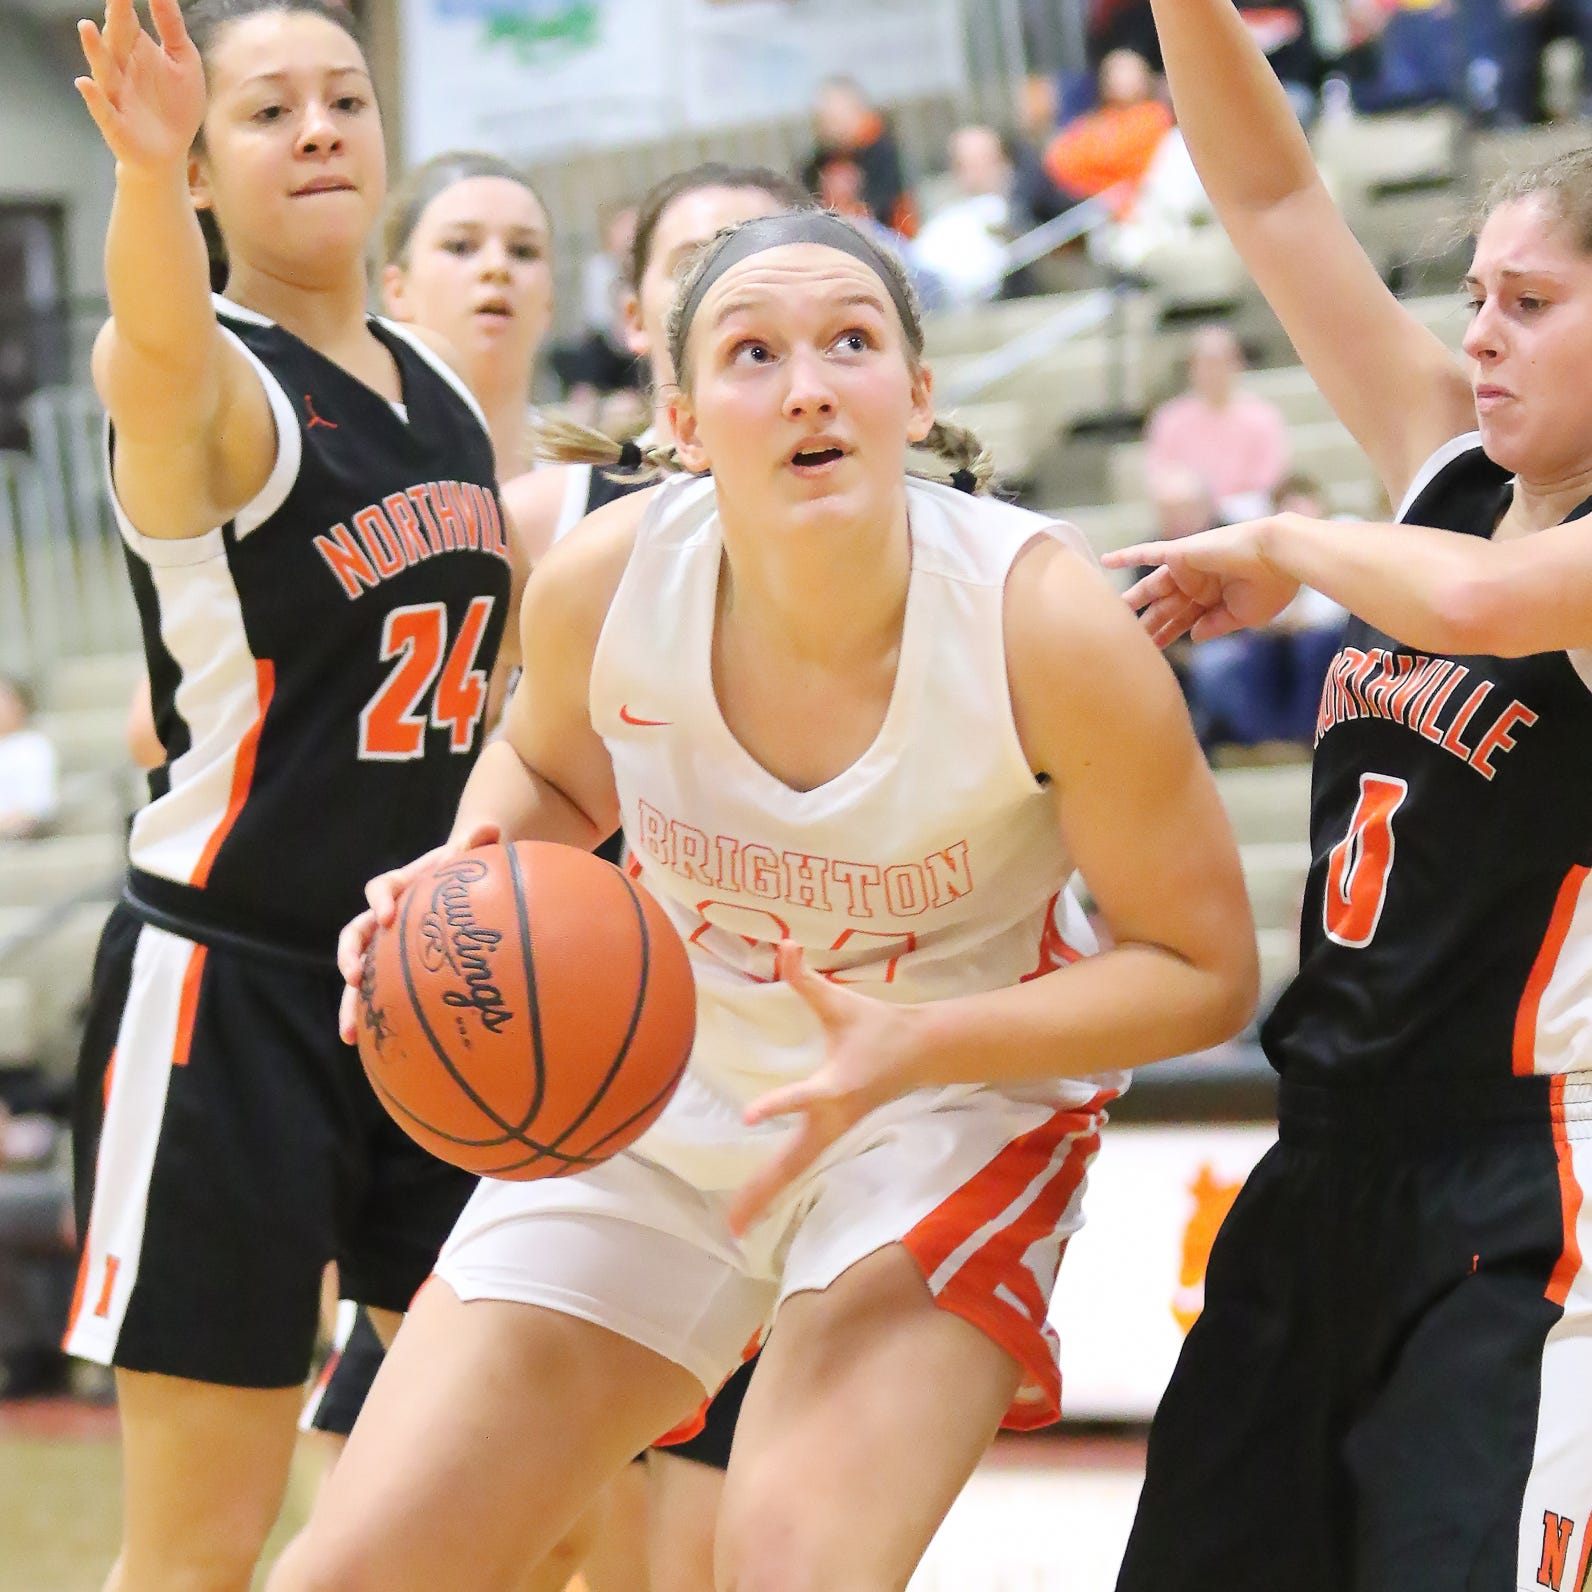 Northville girls hoops coach: 'Even easiest things become difficult' against Brighton